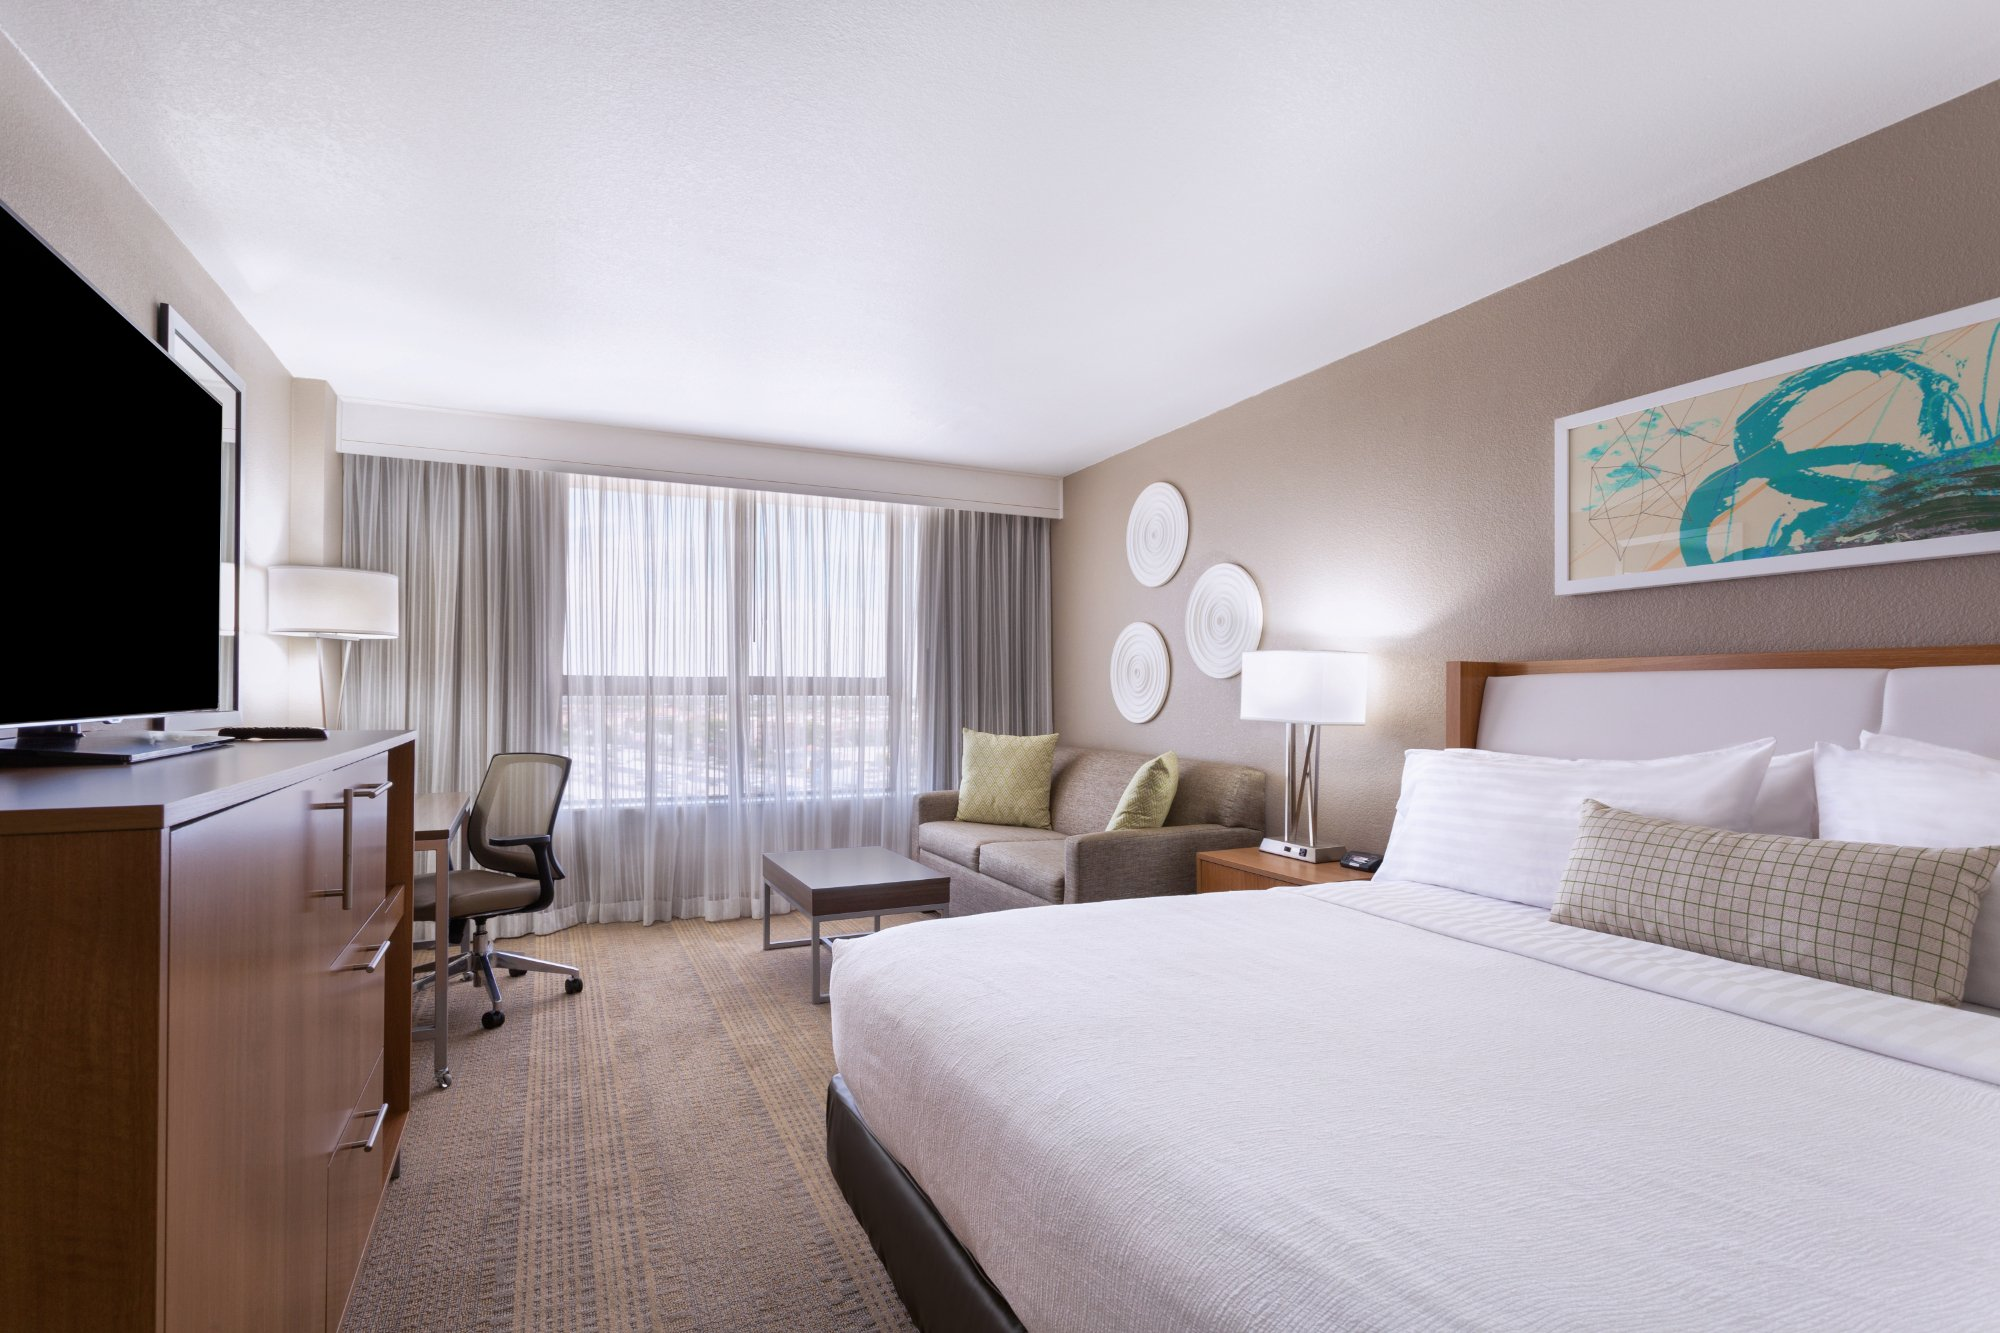 Holiday Inn Miami West Airport Area UPDATED 2017 Reviews